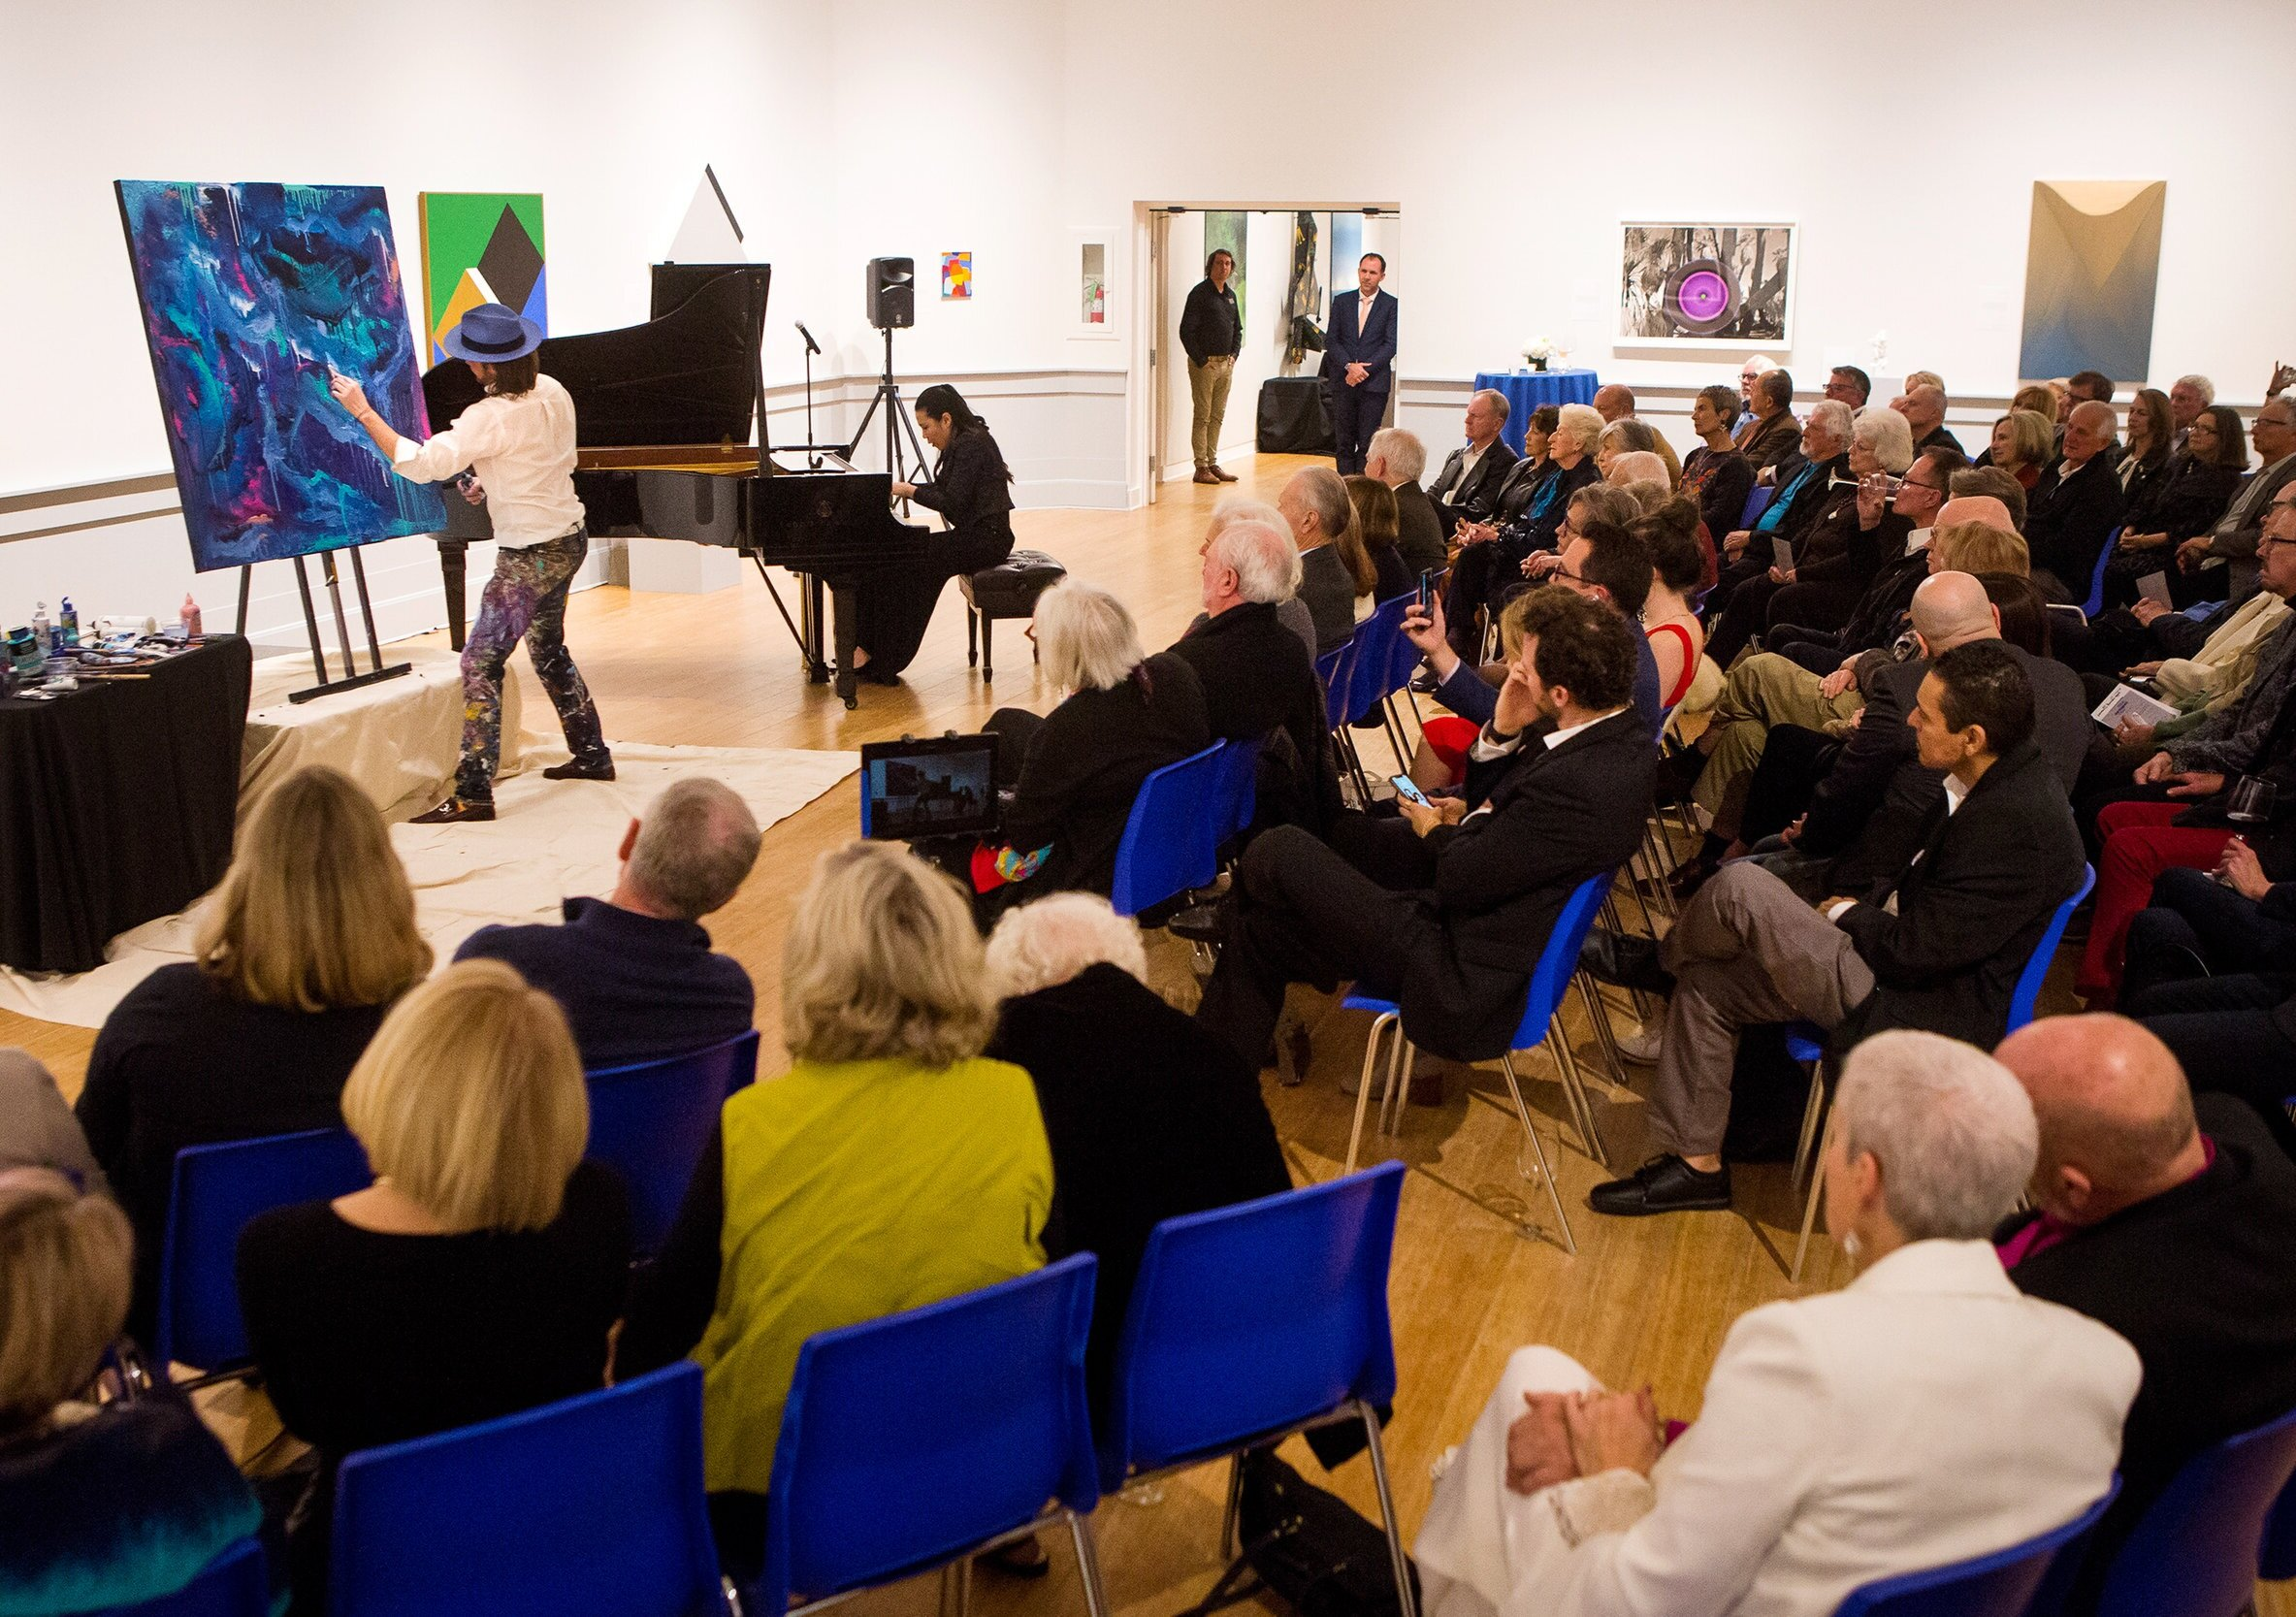 Live Painting - Tripp has developed and provided entertainment for numerous events with his interactive live paintings.Pictured: In Partnership with the Philharmonic Society of Orange County, Tripp created a 25 min live performance painting with Grammy nominated pianist Joyce Yang (music composition by Robert Schumann). This performance was a prelude to the Laguna Beach Music giving attendees a one-of-a-kind private experience.